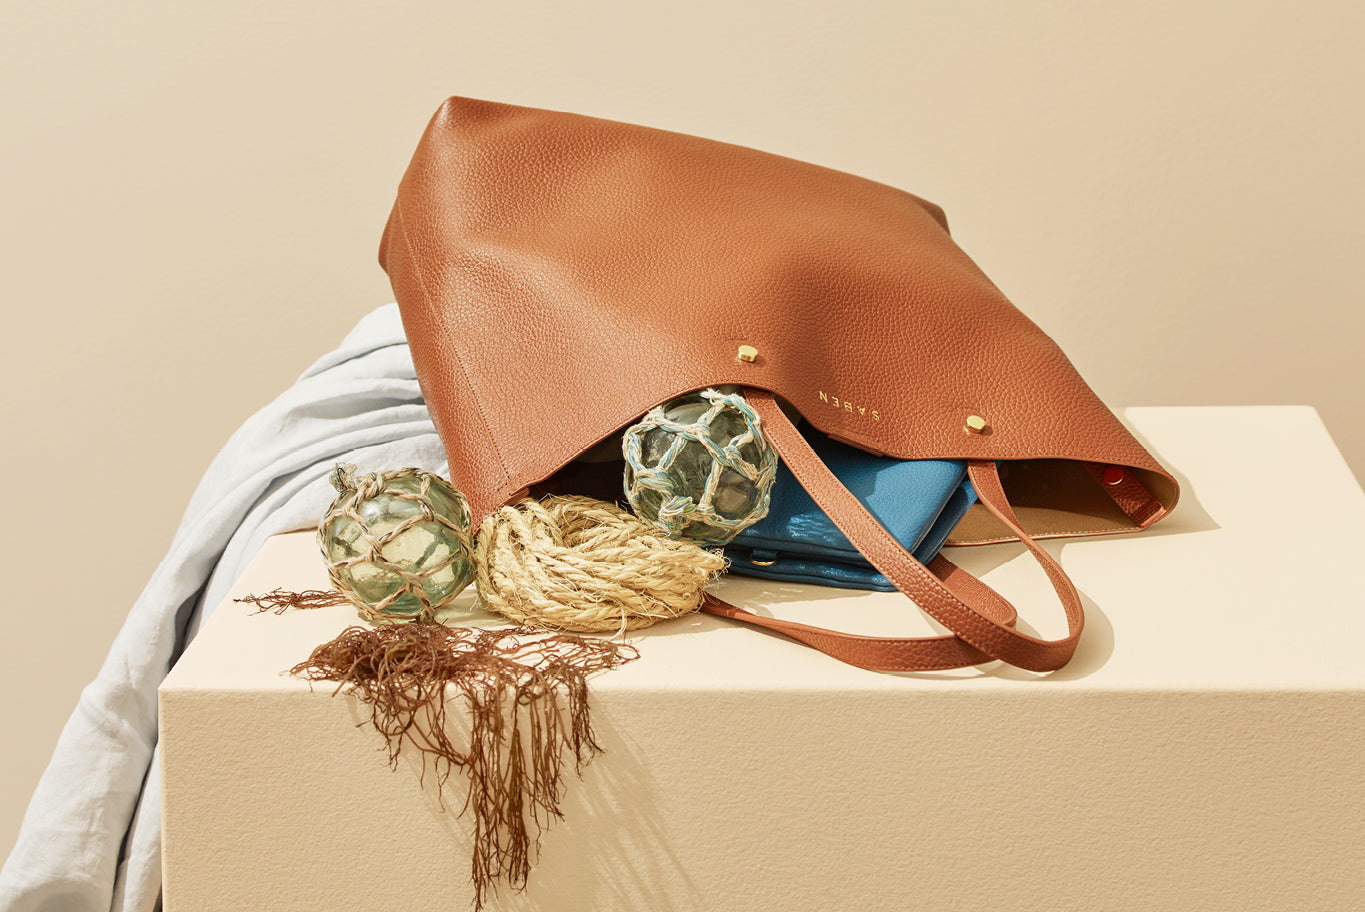 Saben SS20 Vessel collection Carter tote styled by karlya smith photographed by belinda merrie